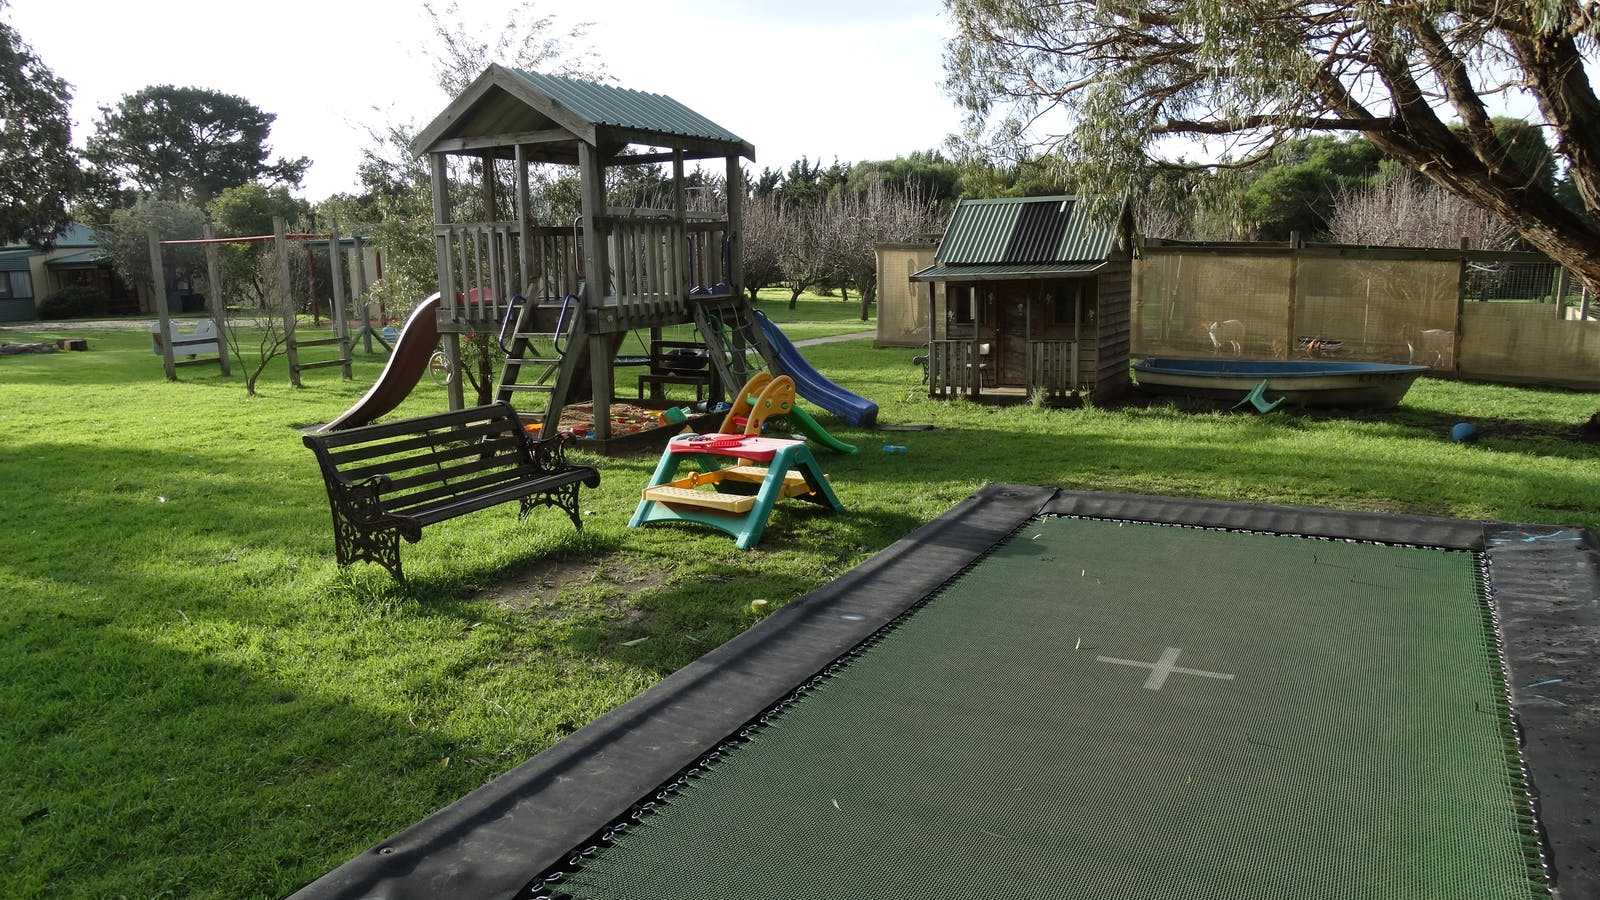 Outdoor play area with everything you could ask for